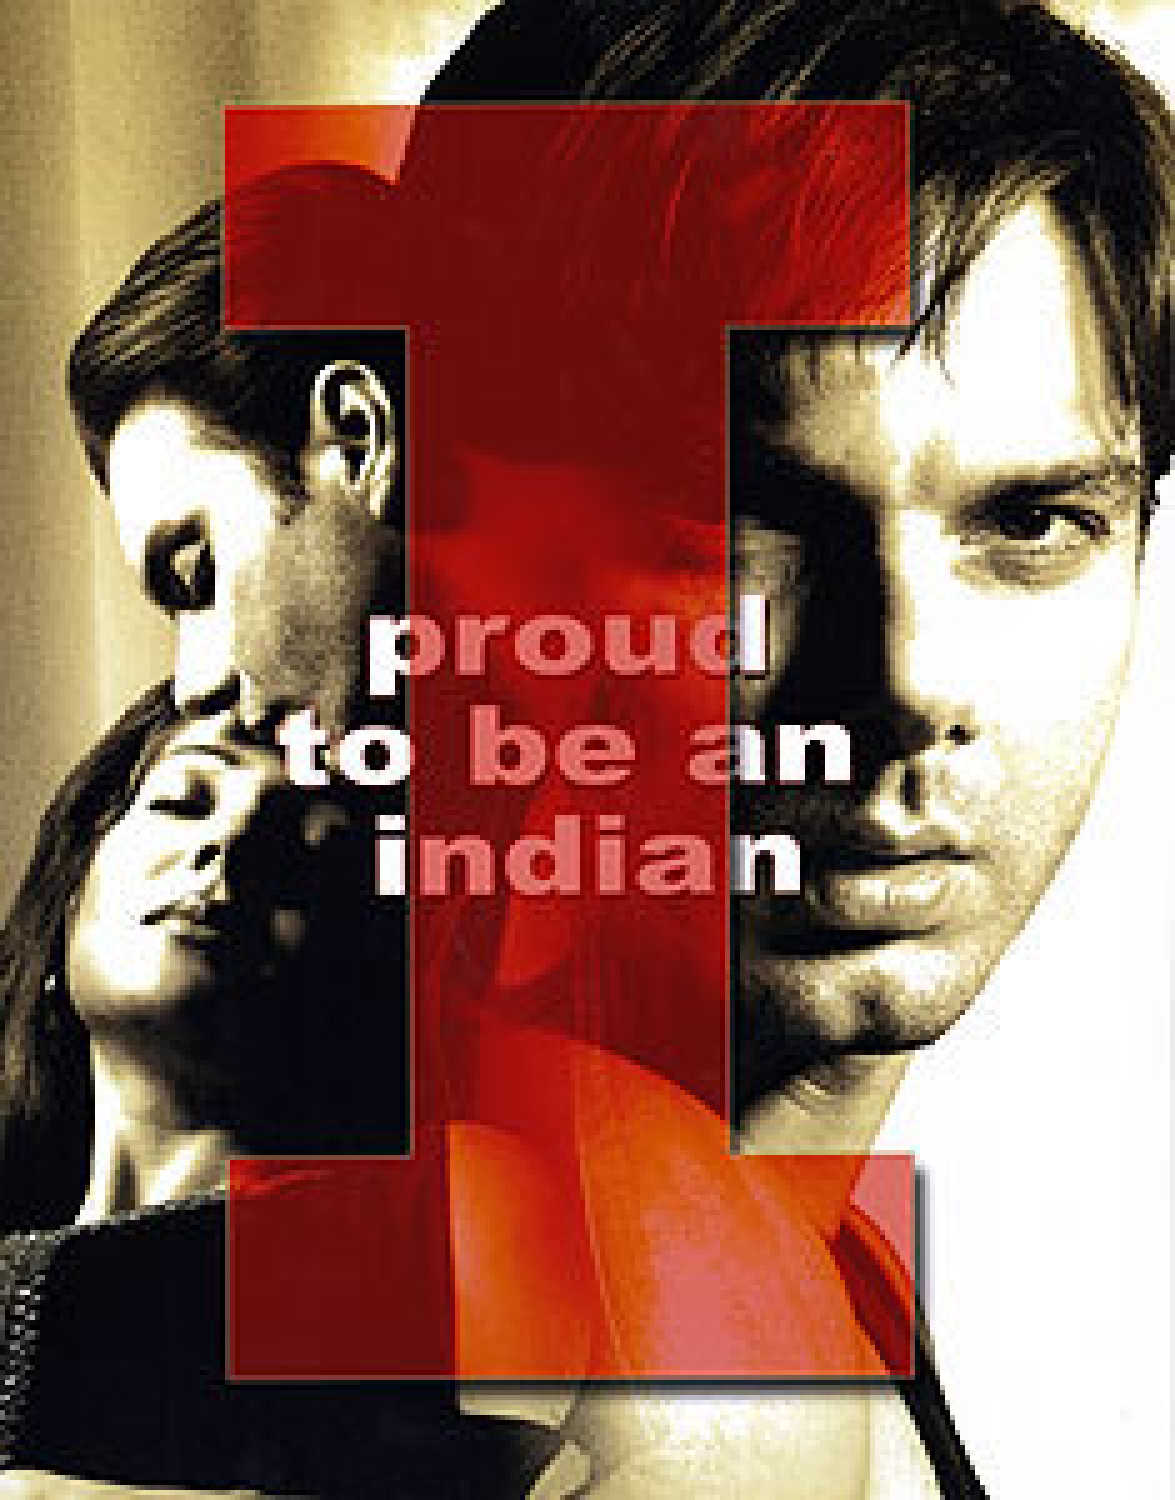 I Proud to Be an Indian (2004)